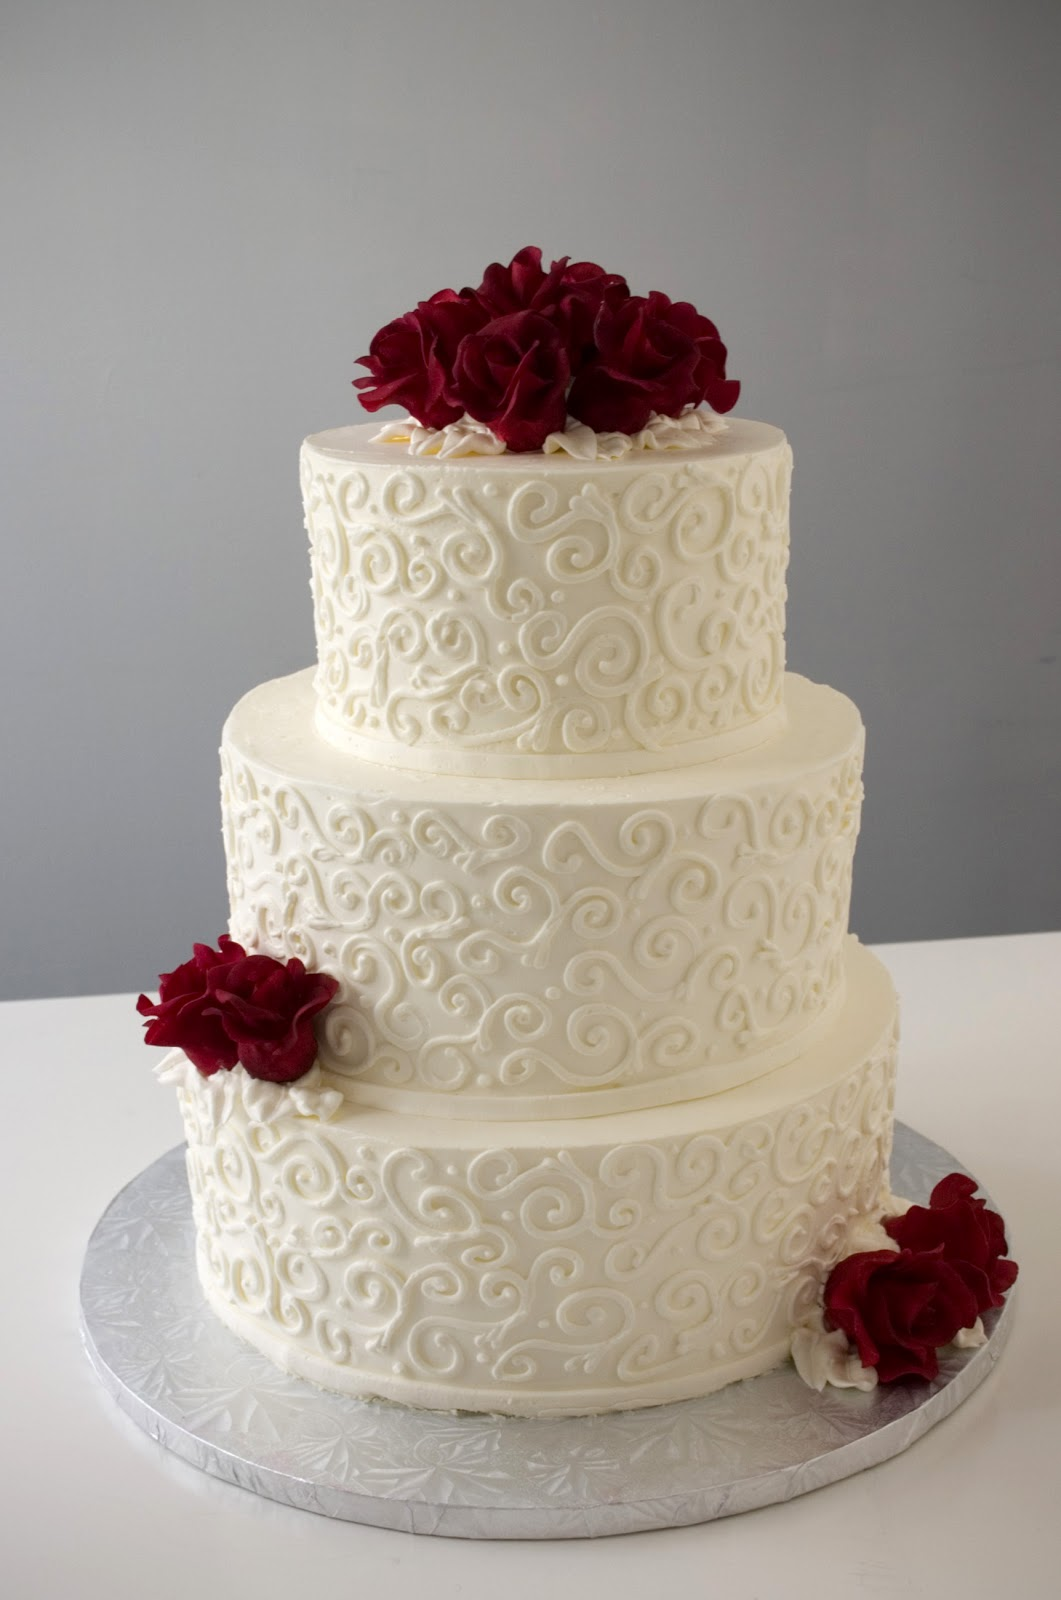 A Simple Cake  Inspiration Gallery Florentine Swirl with custom red classic roses